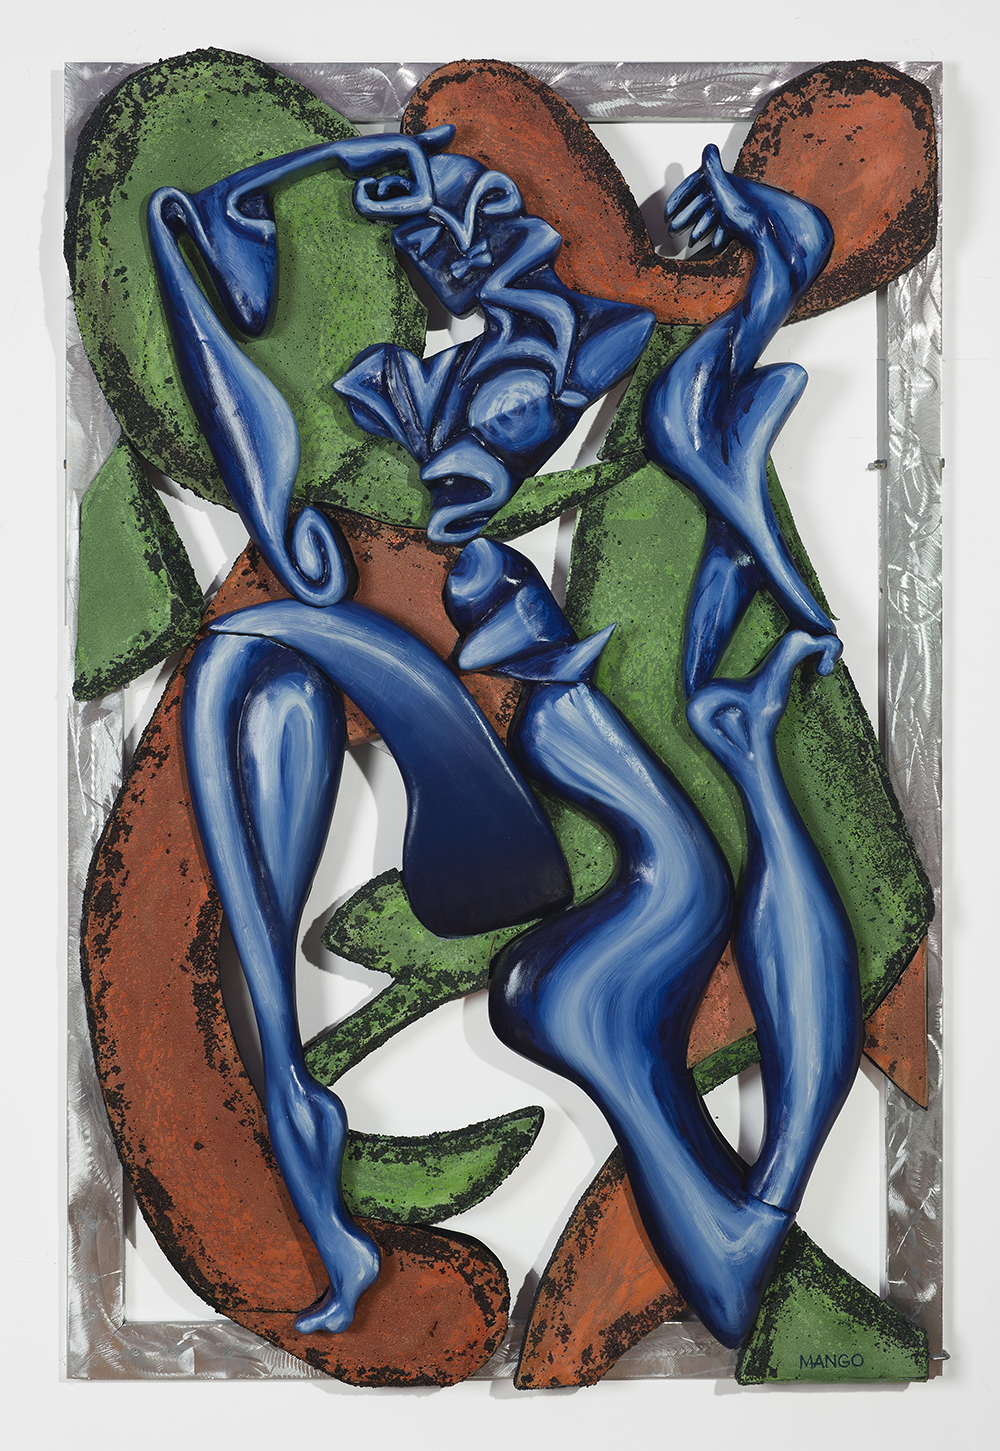 2012  72 X 48 X 4 Inches  Background: Oil on canvas over sculpted  Figure: Oil on sculpted foam  Frame: Polished, welded aluminum